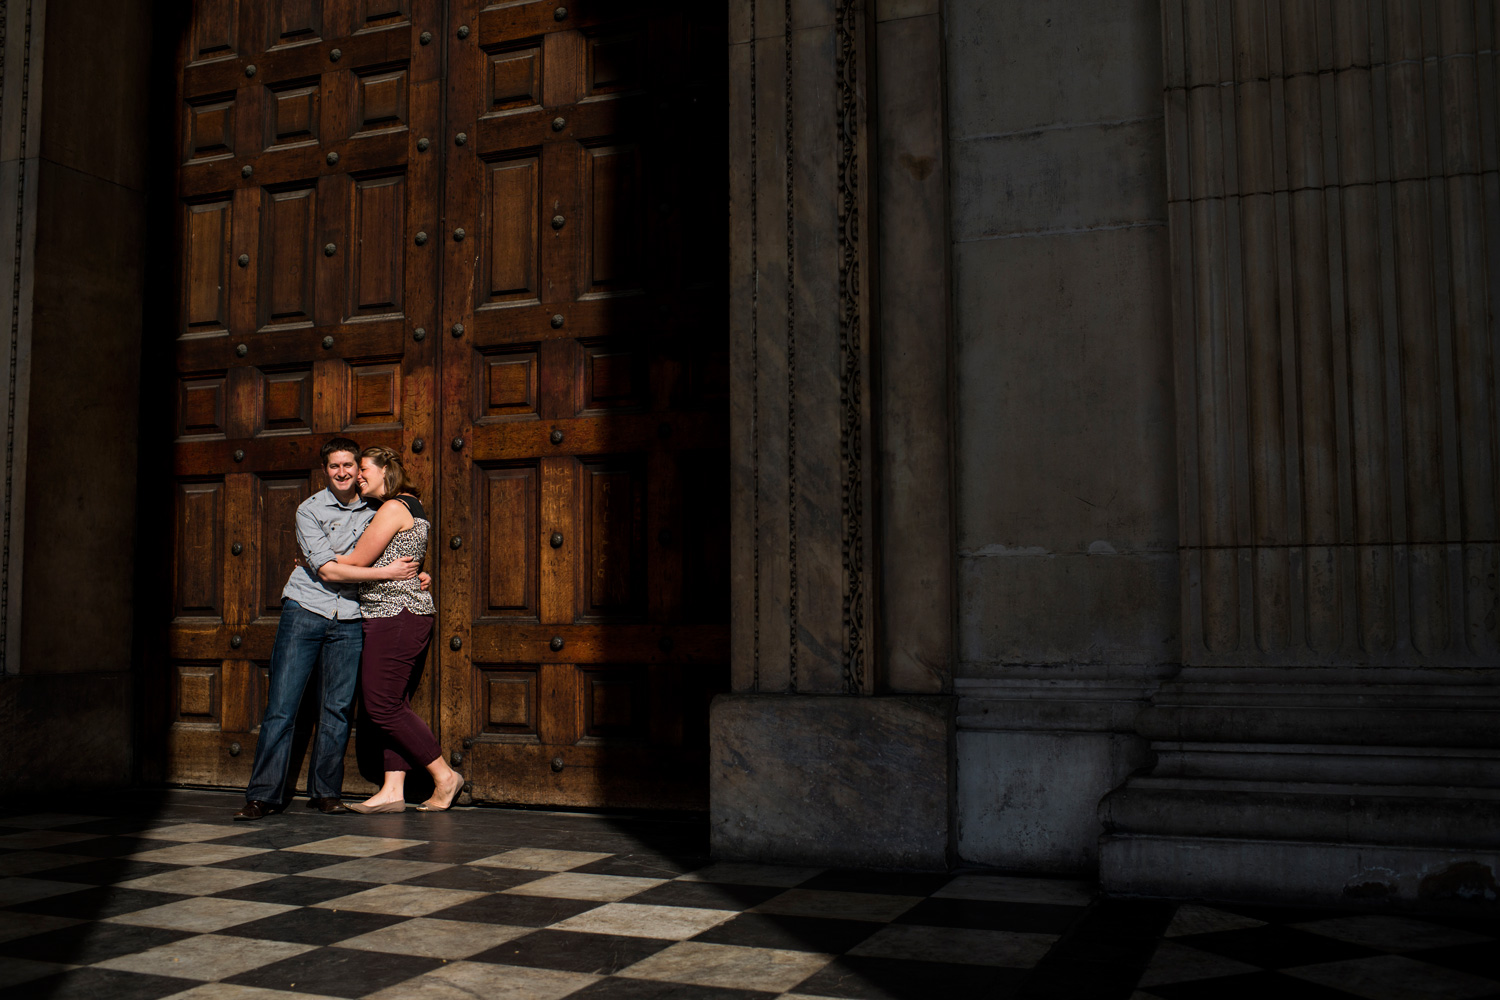 London Pre Wedding Shoot, Amanda & Chris.